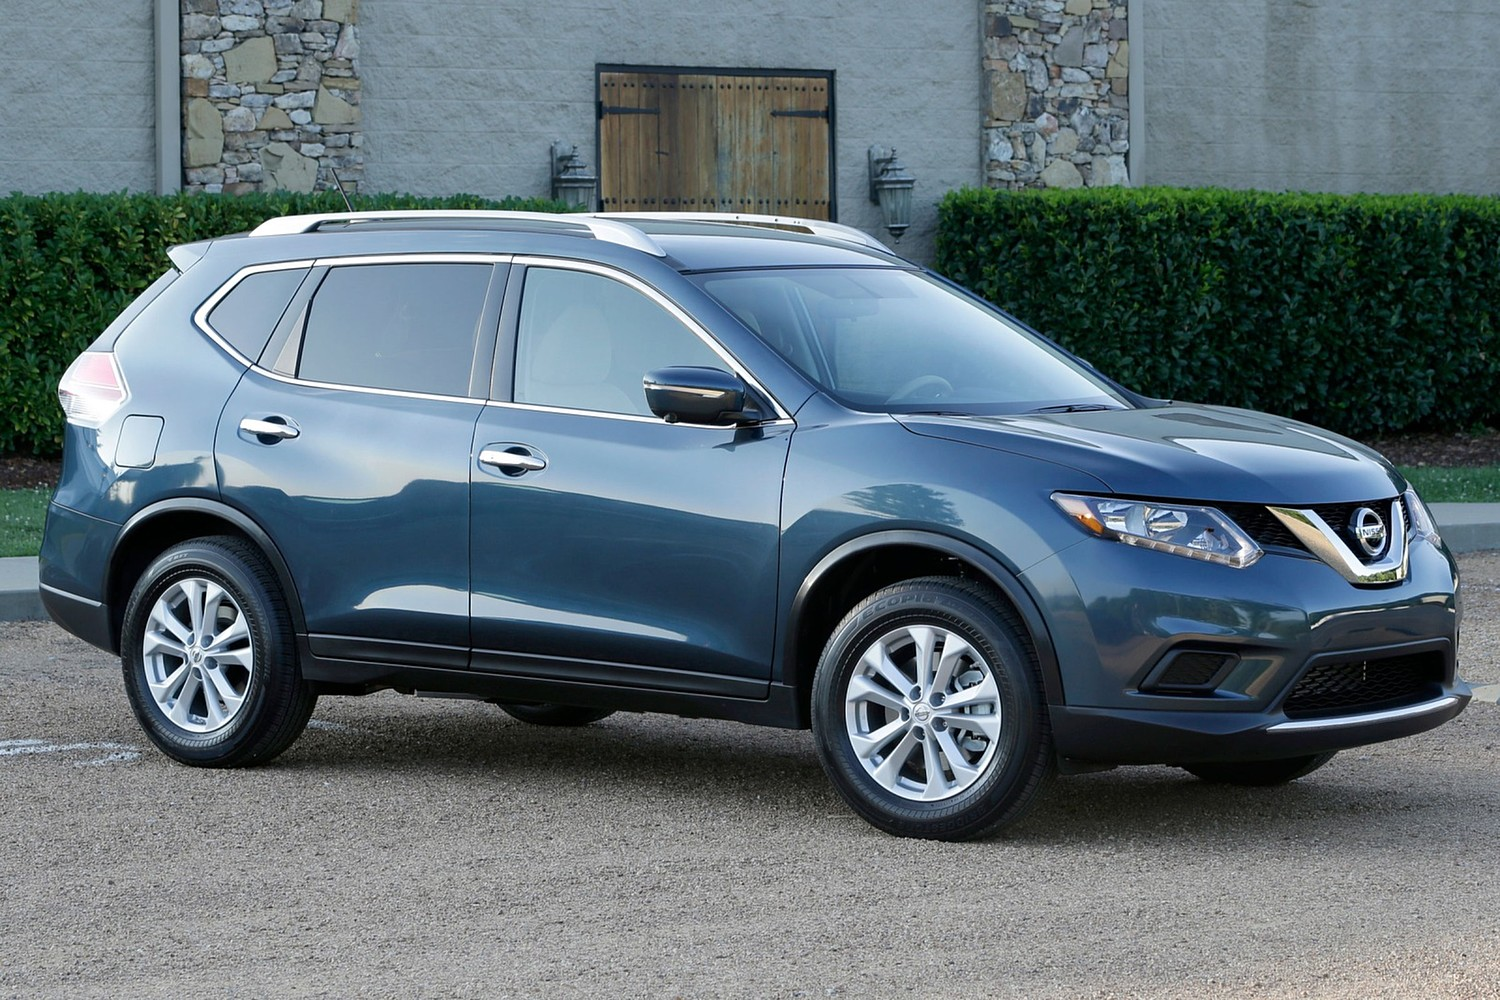 2016 Nissan Rogue SV 4dr SUV Exterior Shown